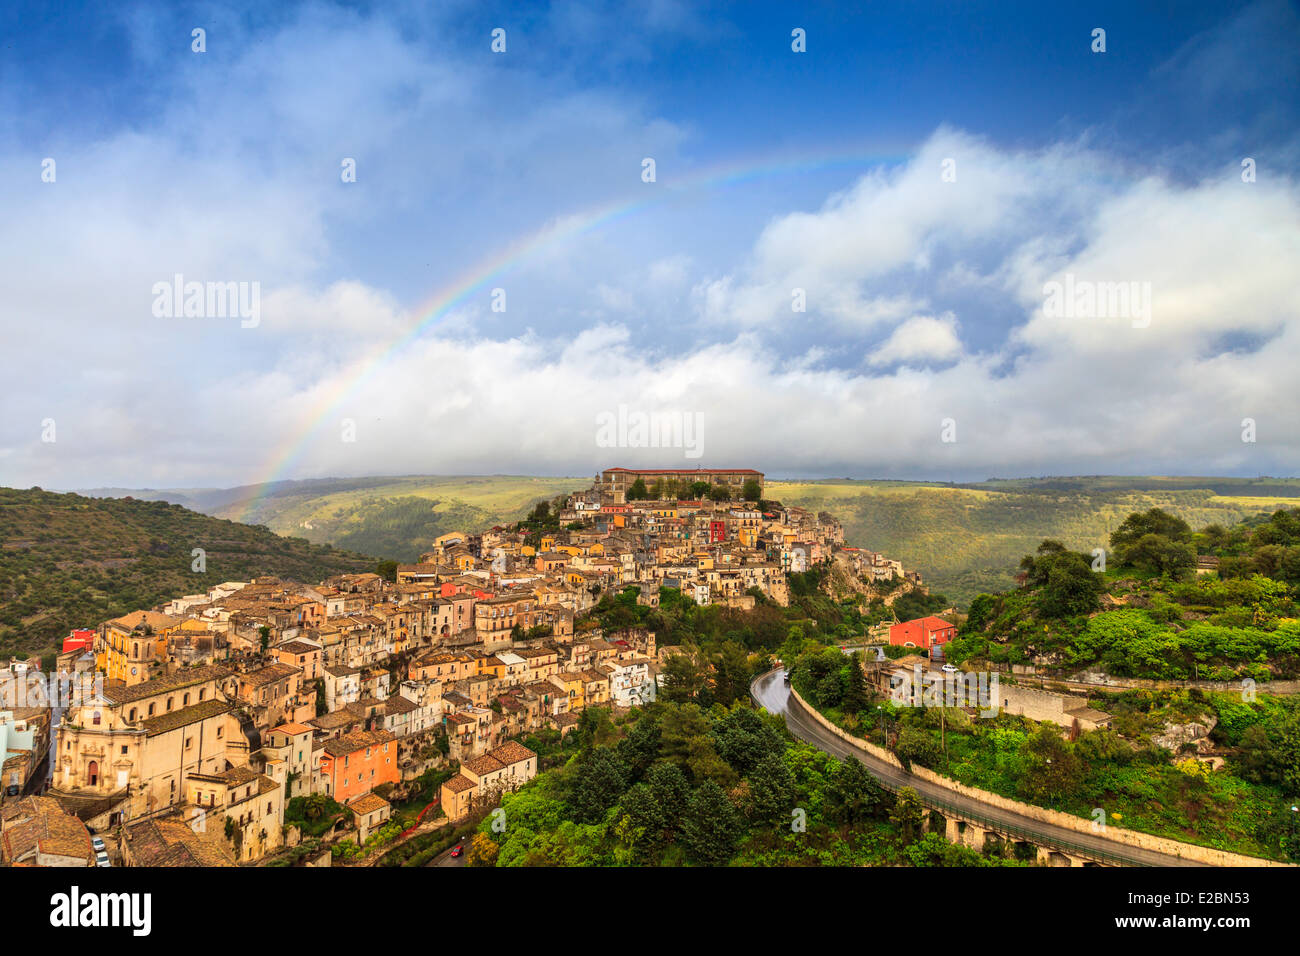 Panoramic view of Ragusa Ibla - Stock Image